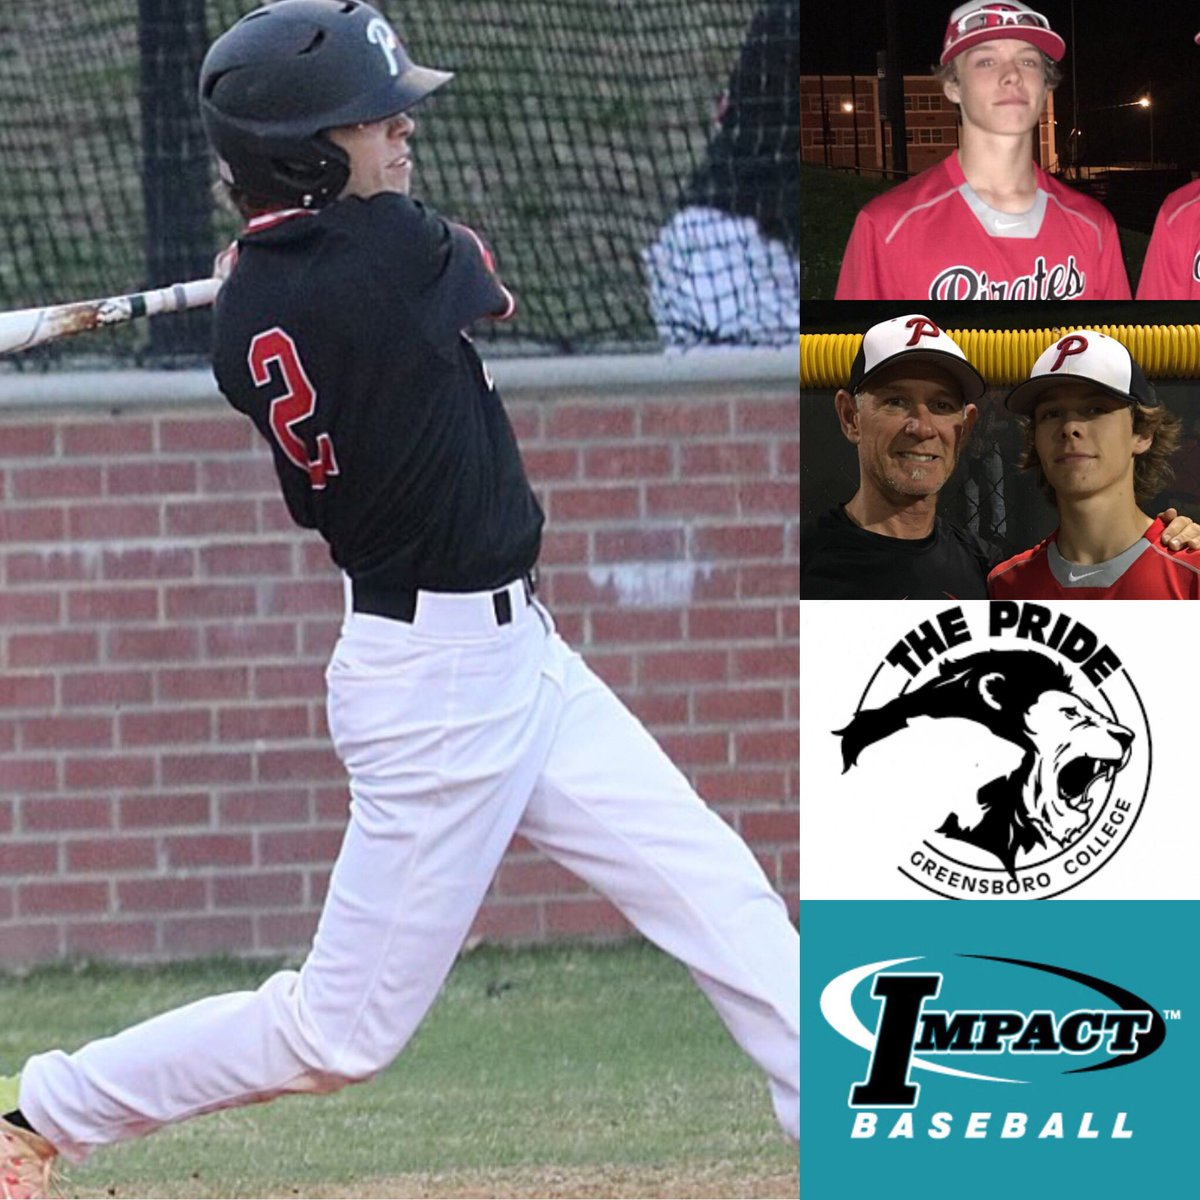 Congratulations Luke Pegram (2018 Page High School OF) on his commitment to Greensboro College! #impact <br>http://pic.twitter.com/iKUhCBeXUi